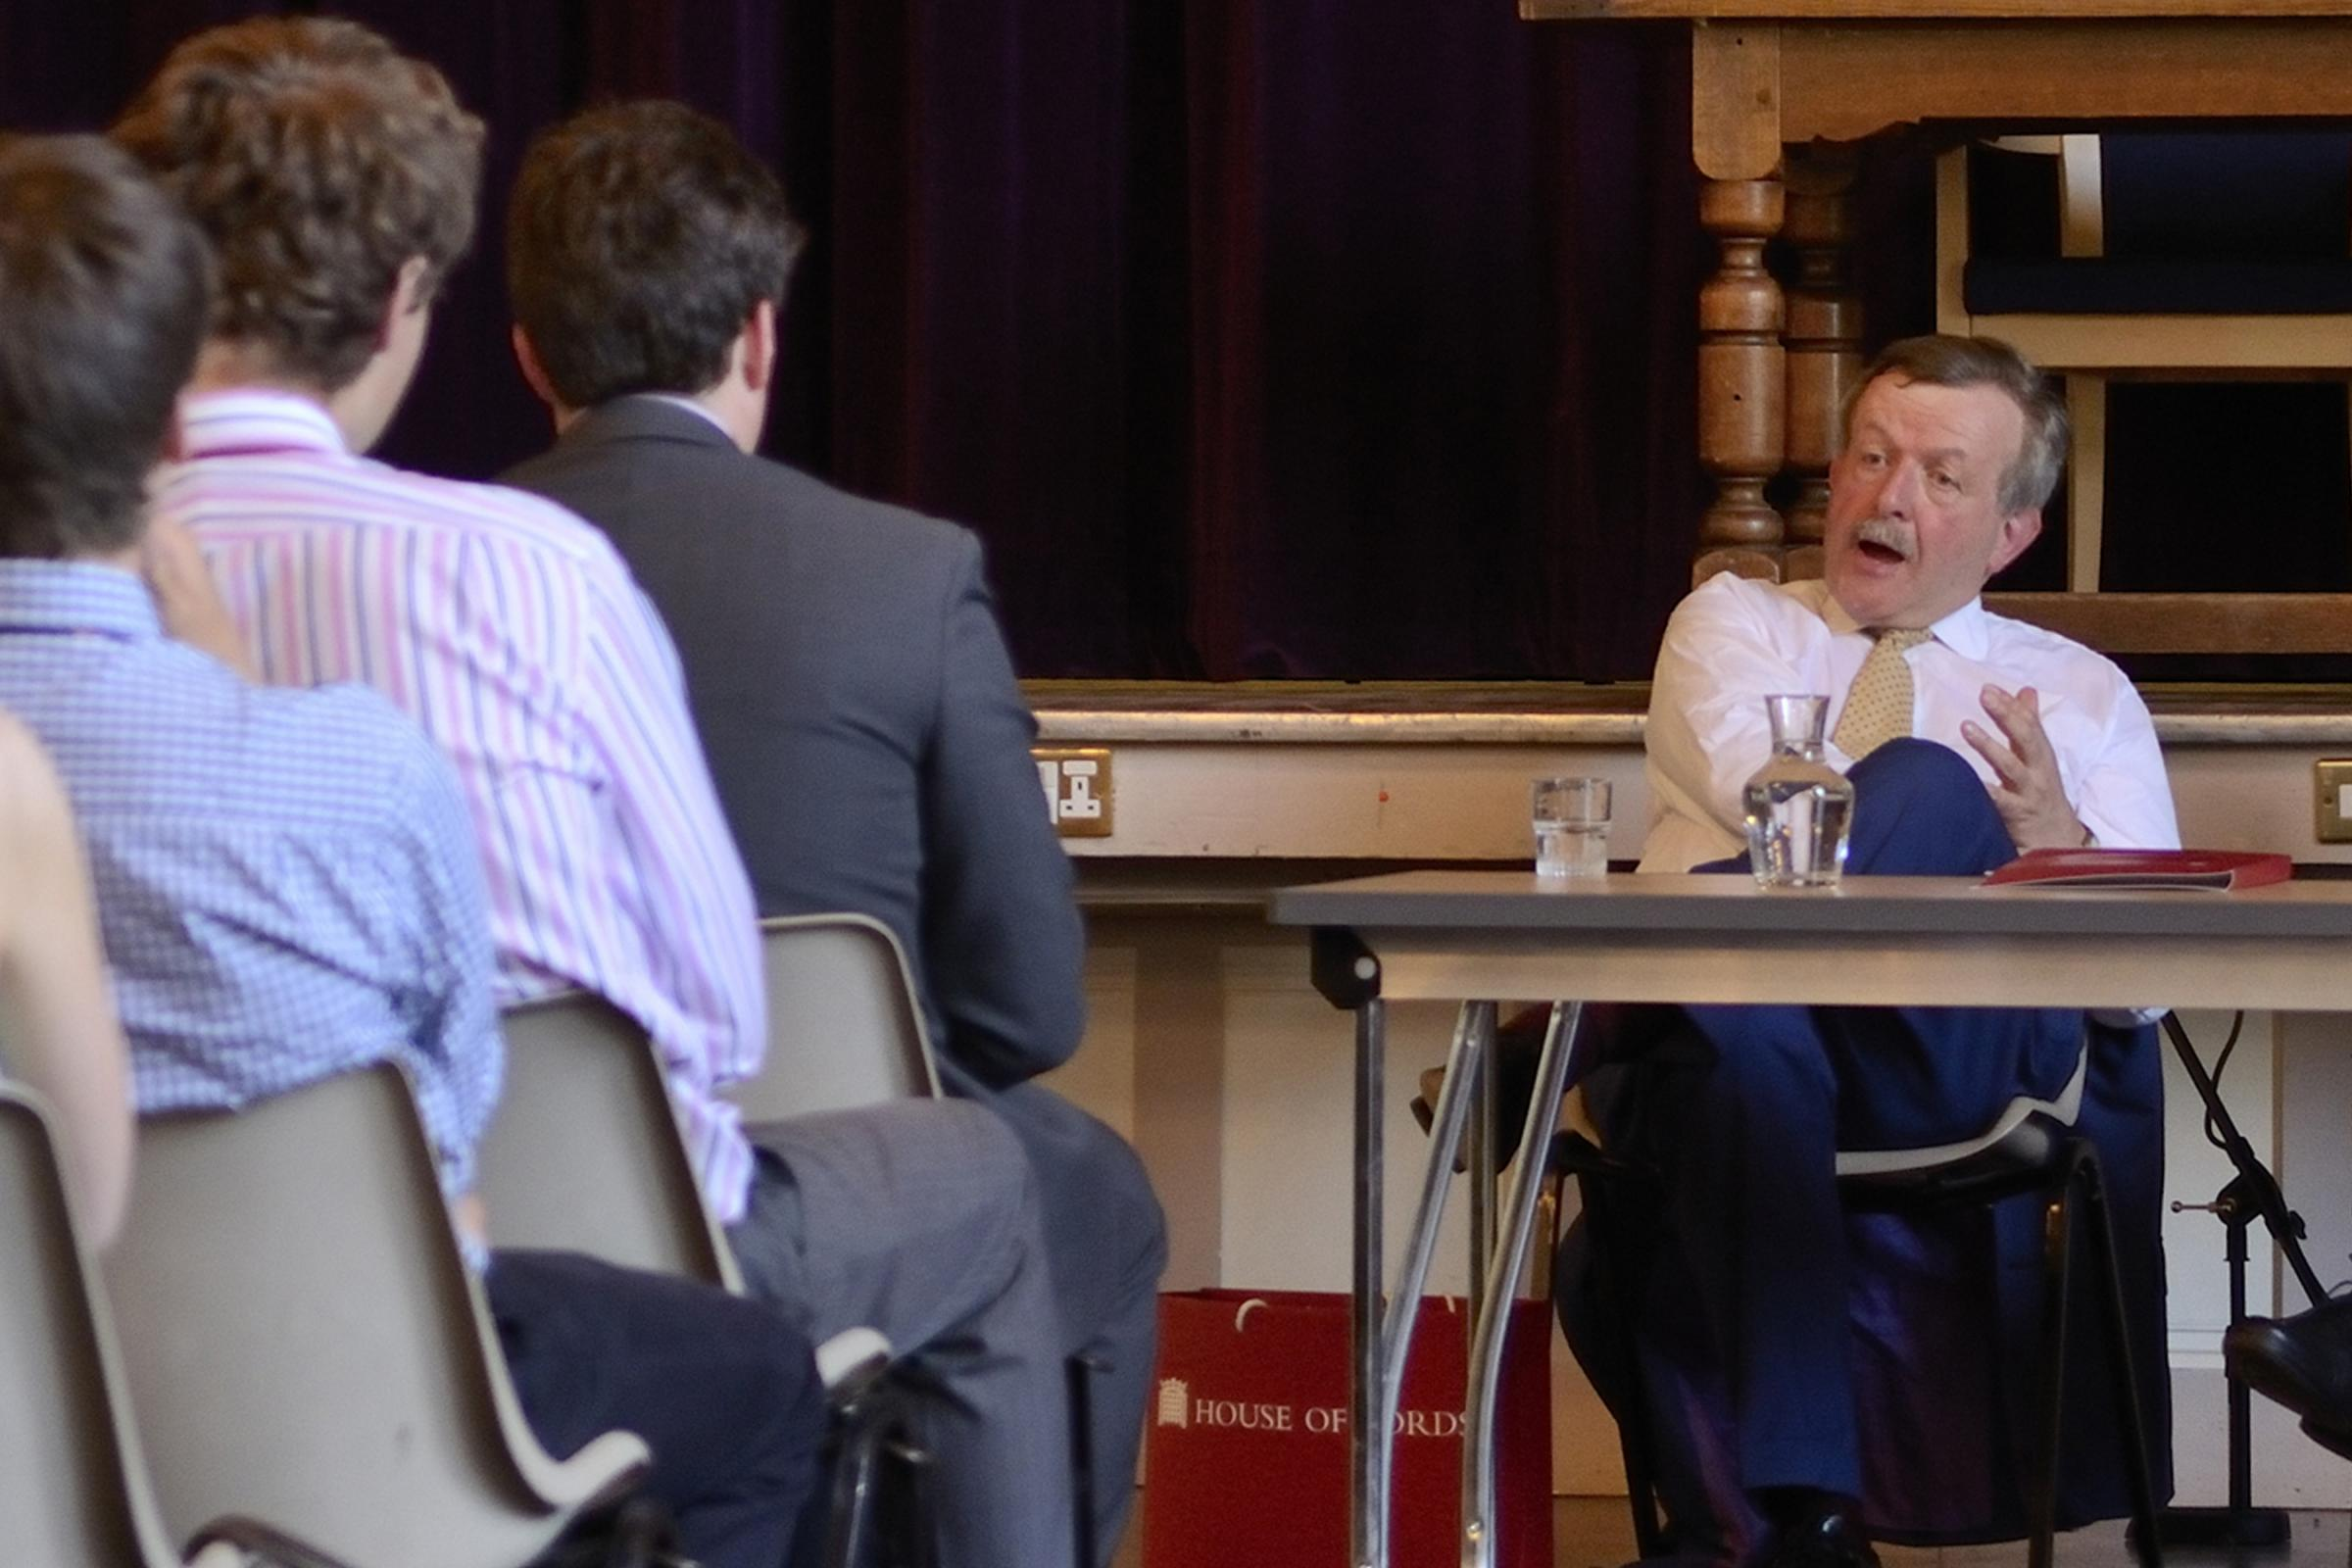 Lord Lexden talks to students at Colchester Royal Grammar School